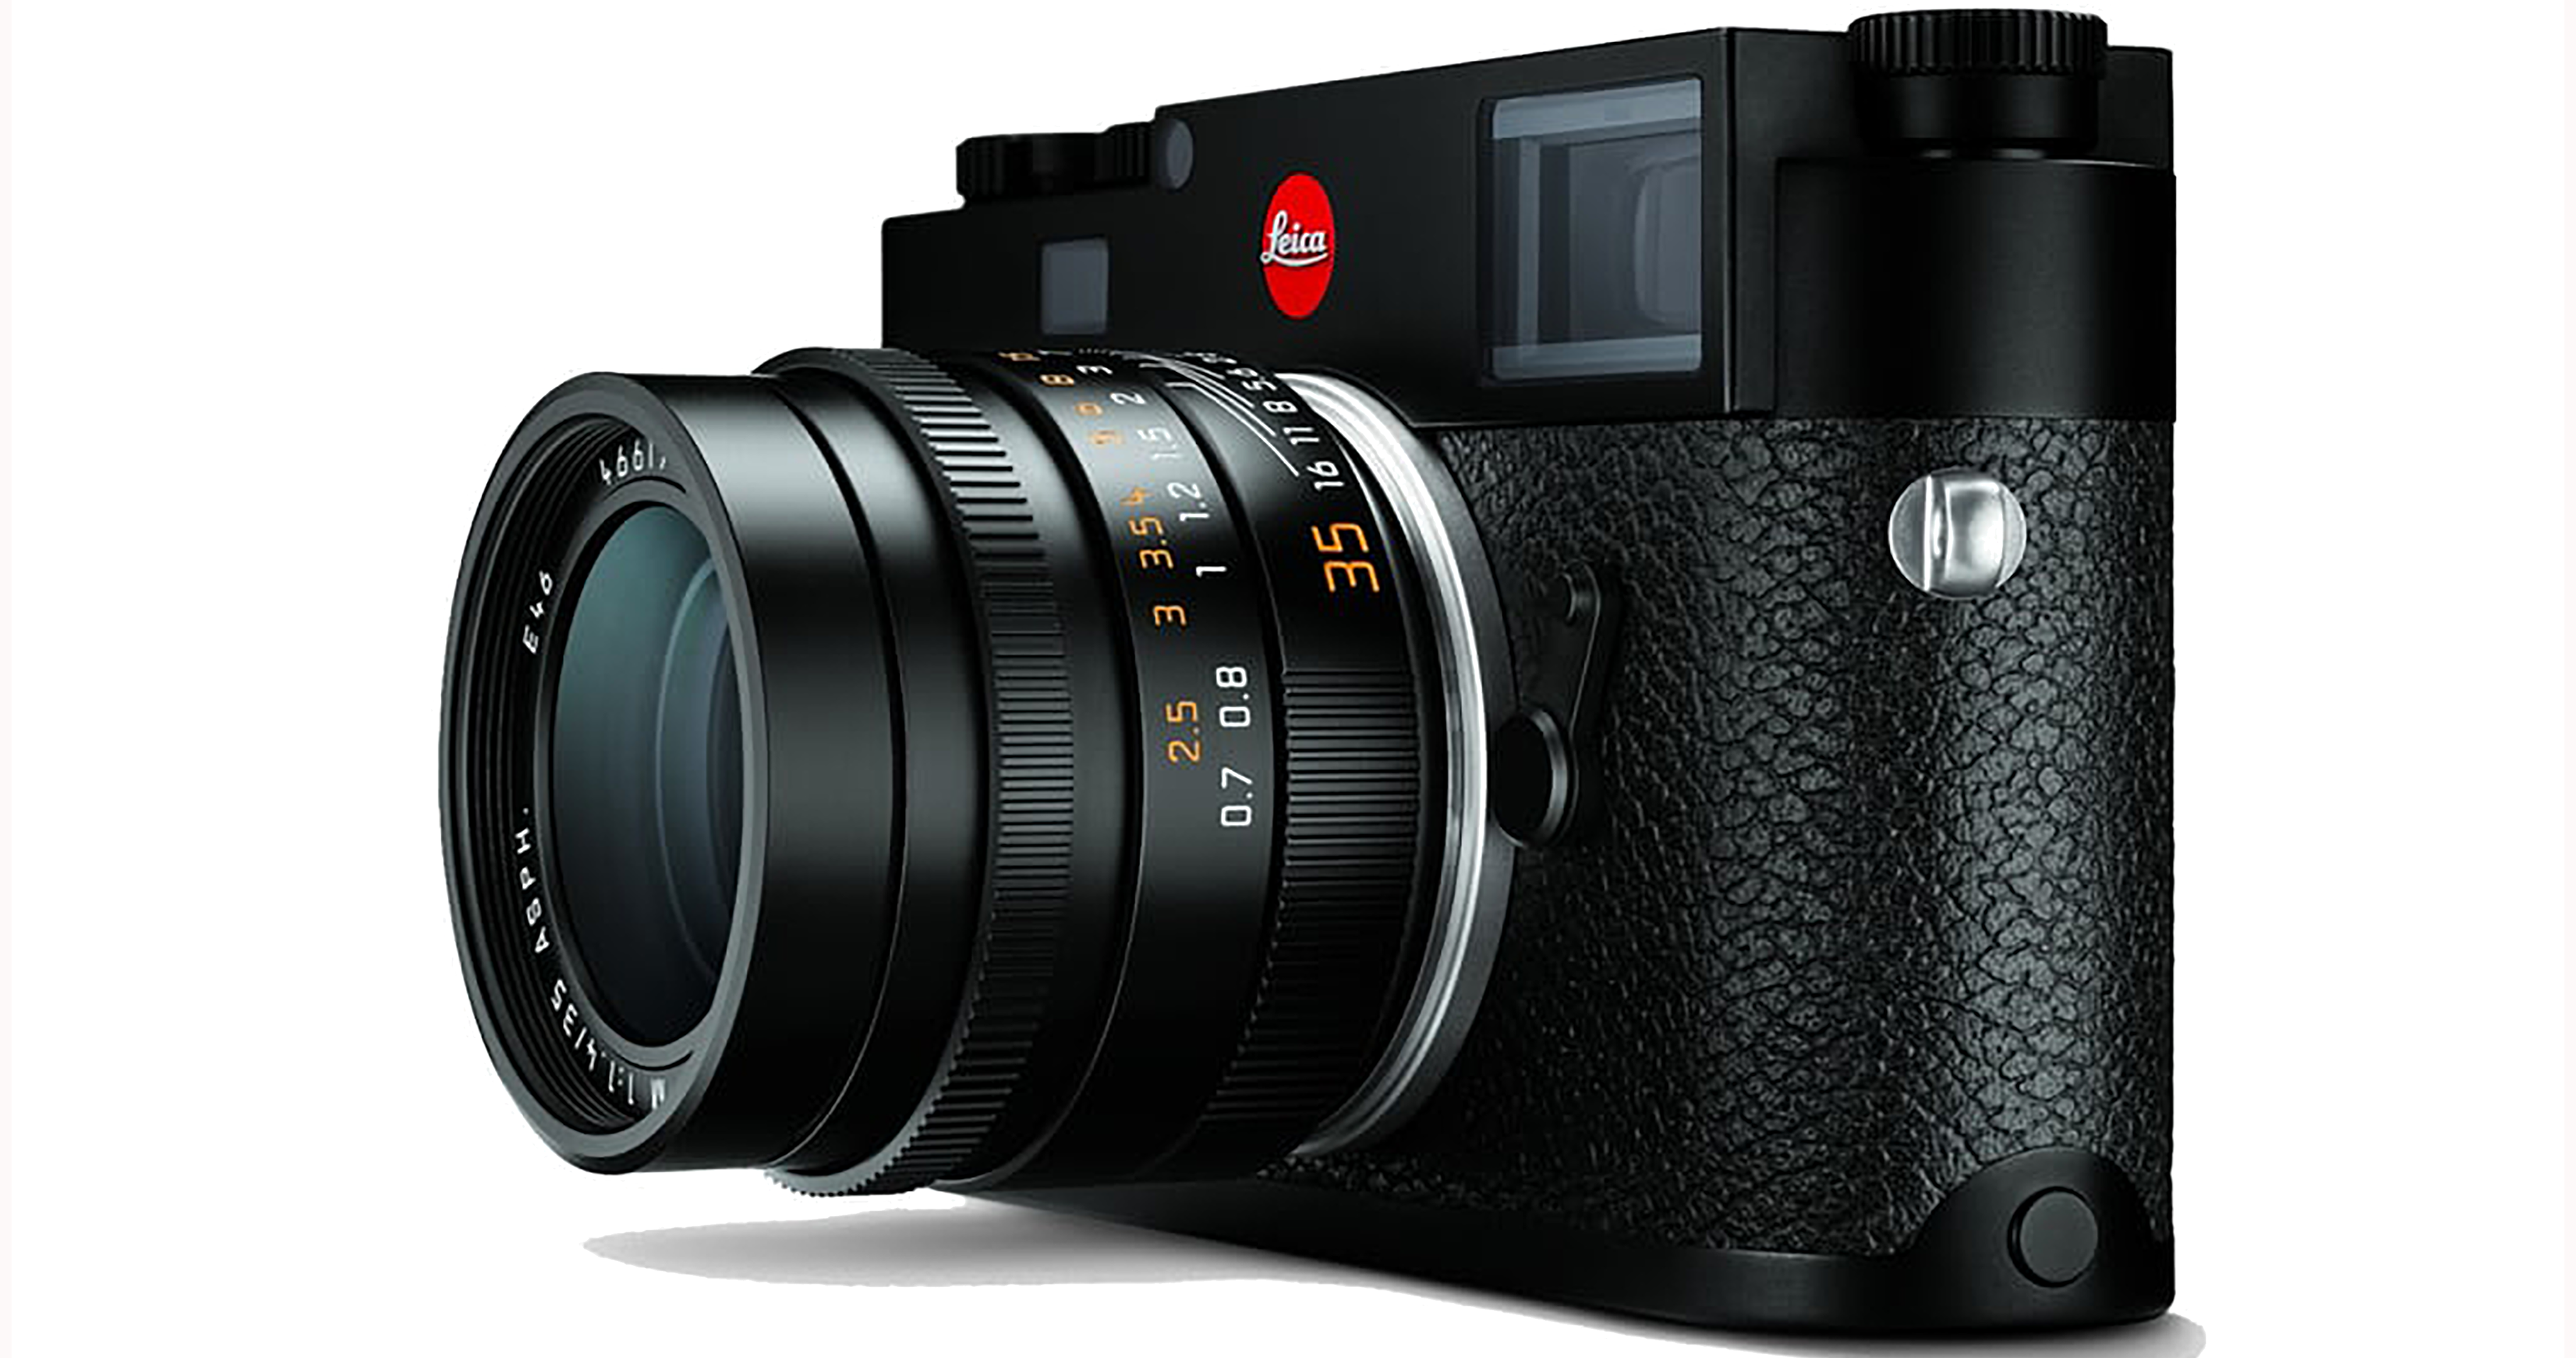 Leica M10 Camera Review - Leica Review - Oz Yilmaz